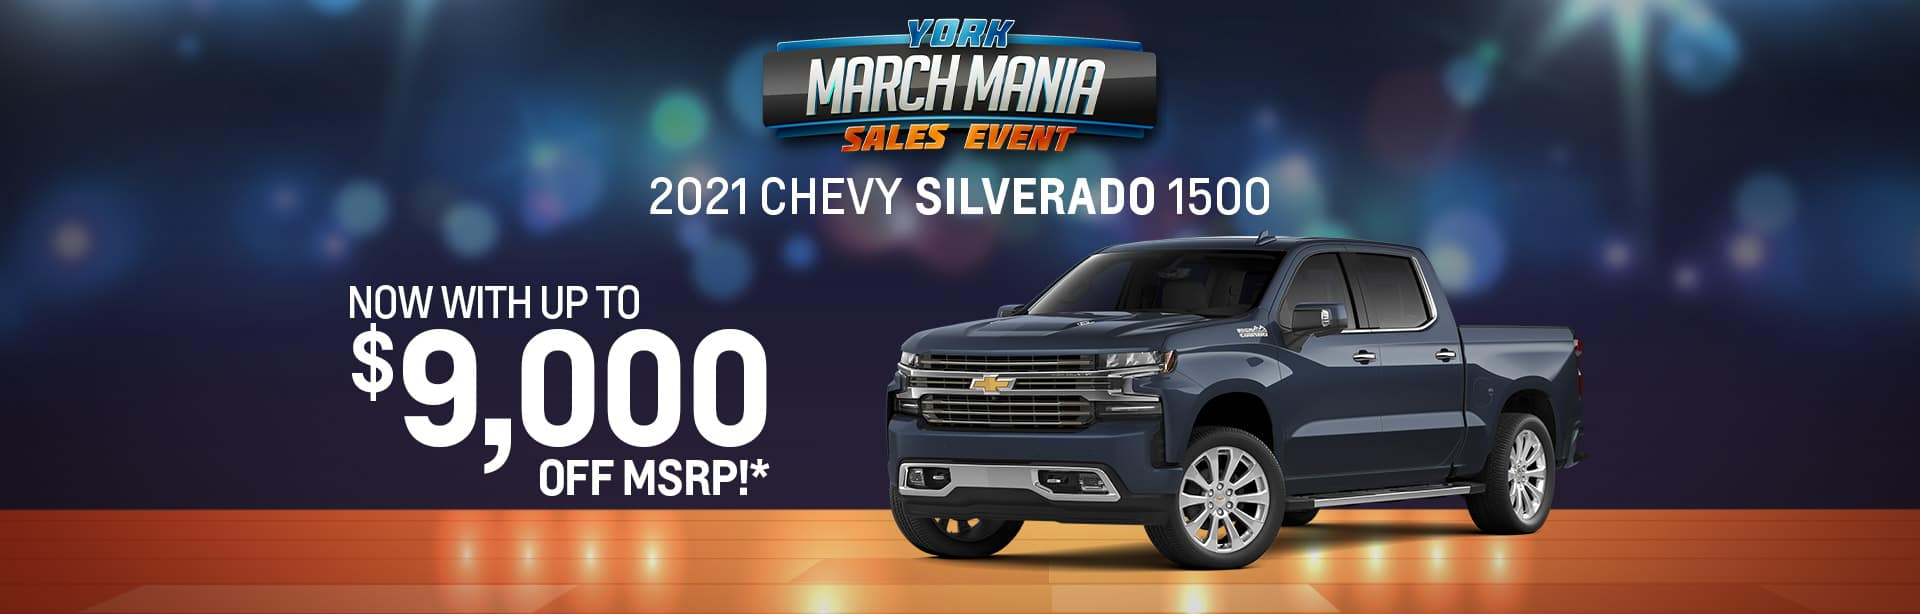 Best lease offer on a new 2021 Chevy Silverado 1500 near Indianapolis IN